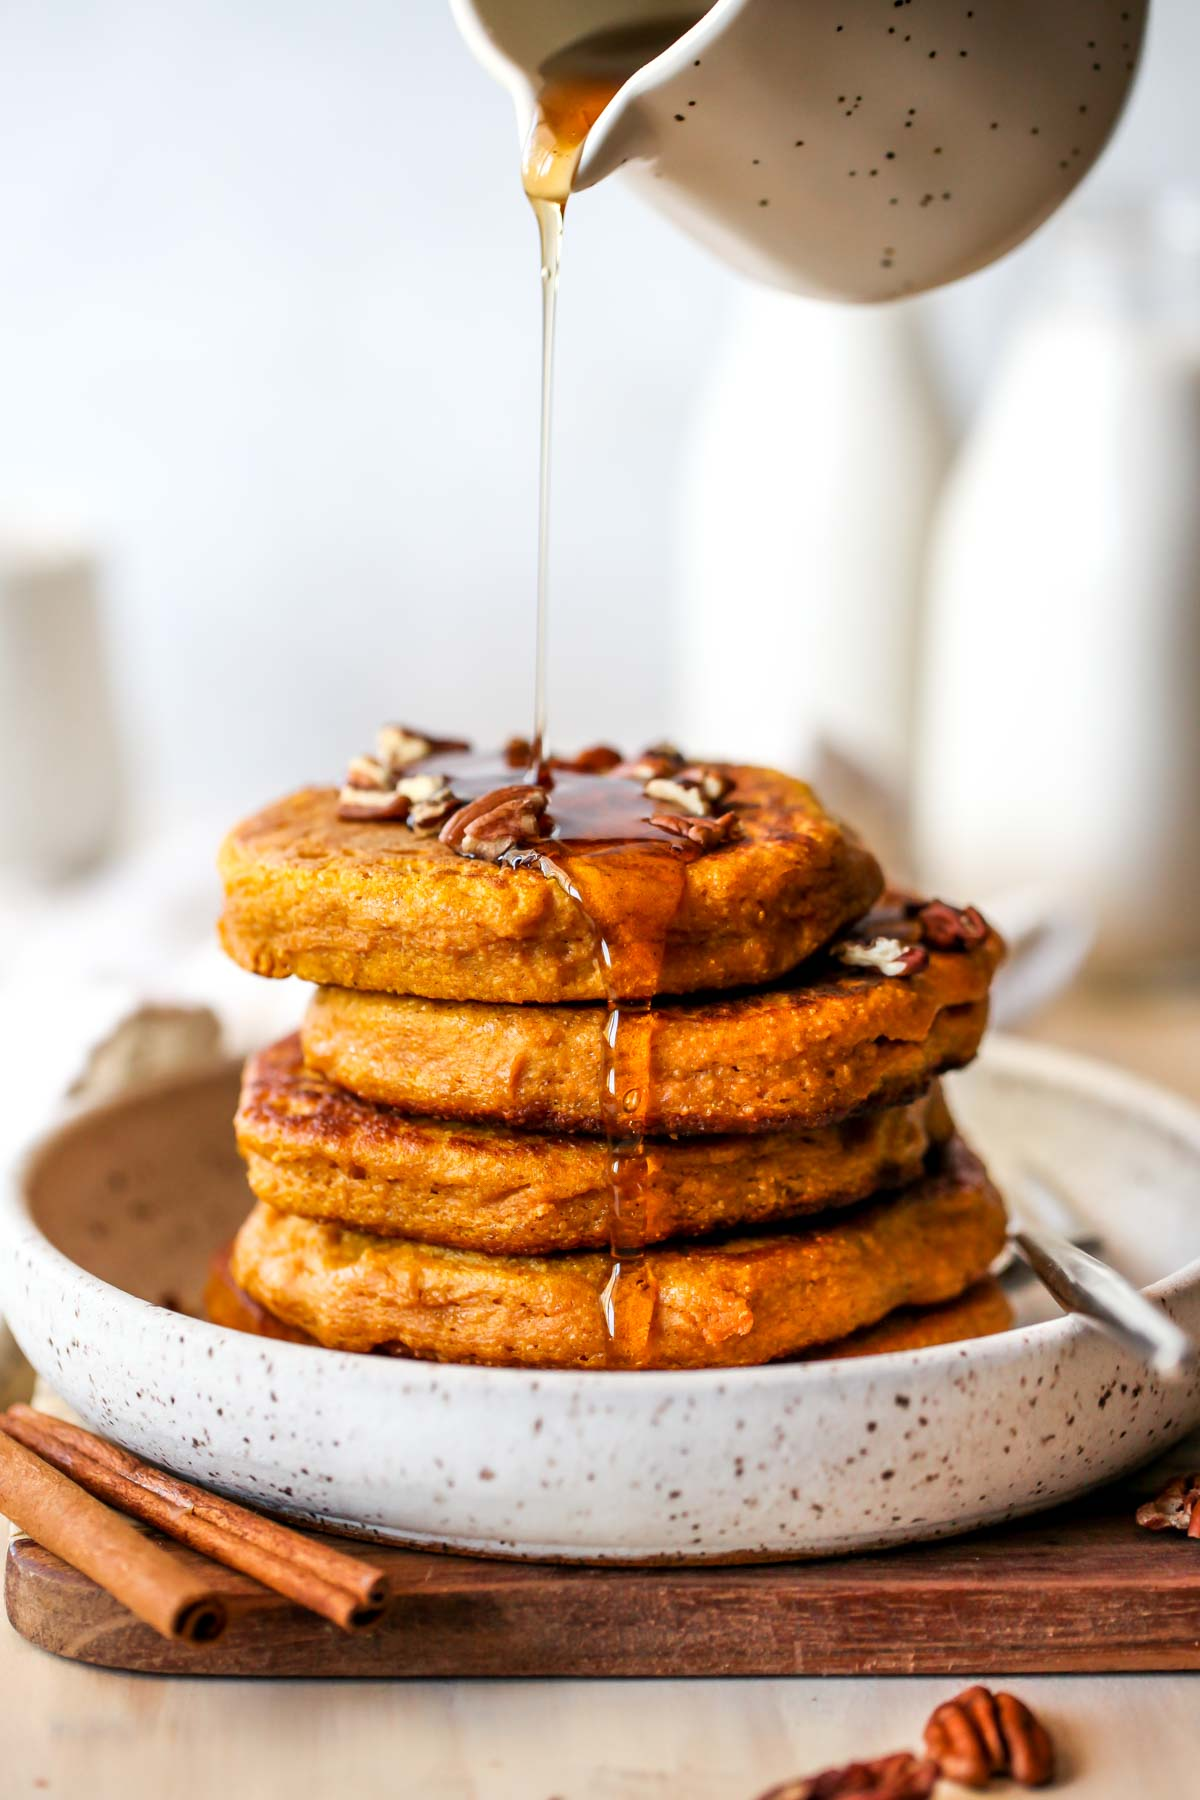 Stack of pancakes being drizzled with maple syrup